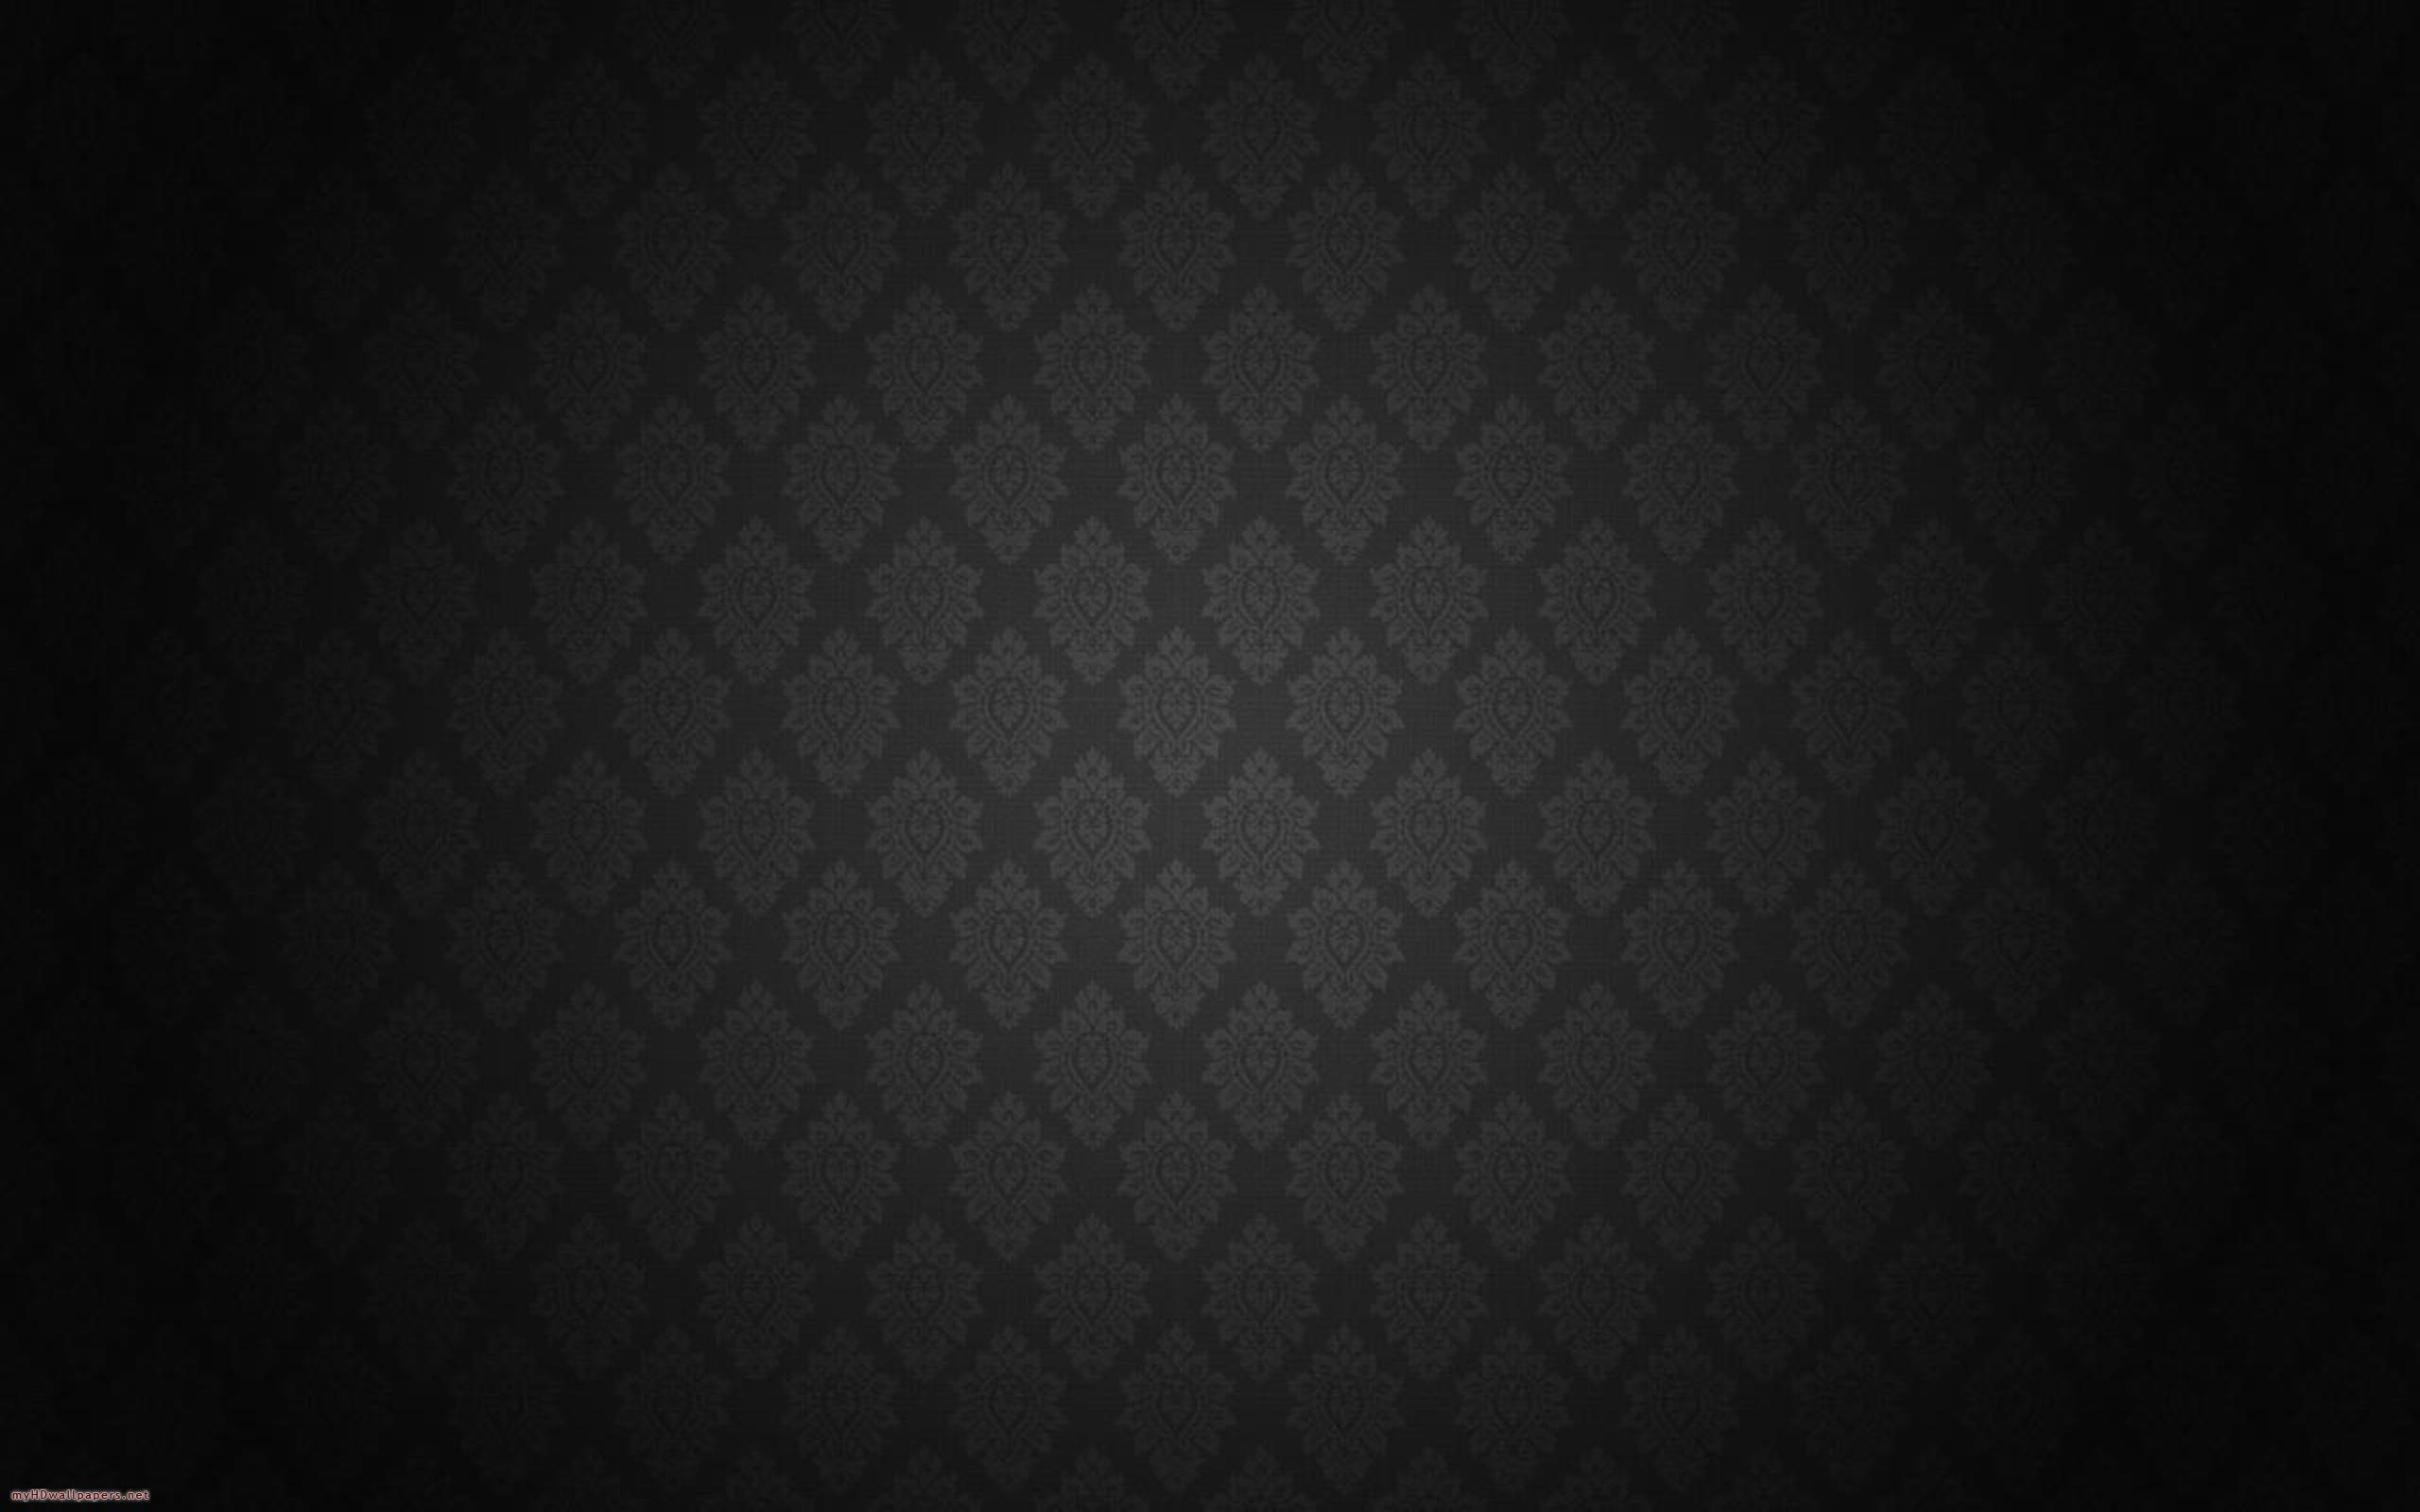 2560x1600 ... Black And Gold Background Stock Photography - Image: 16547842 ...